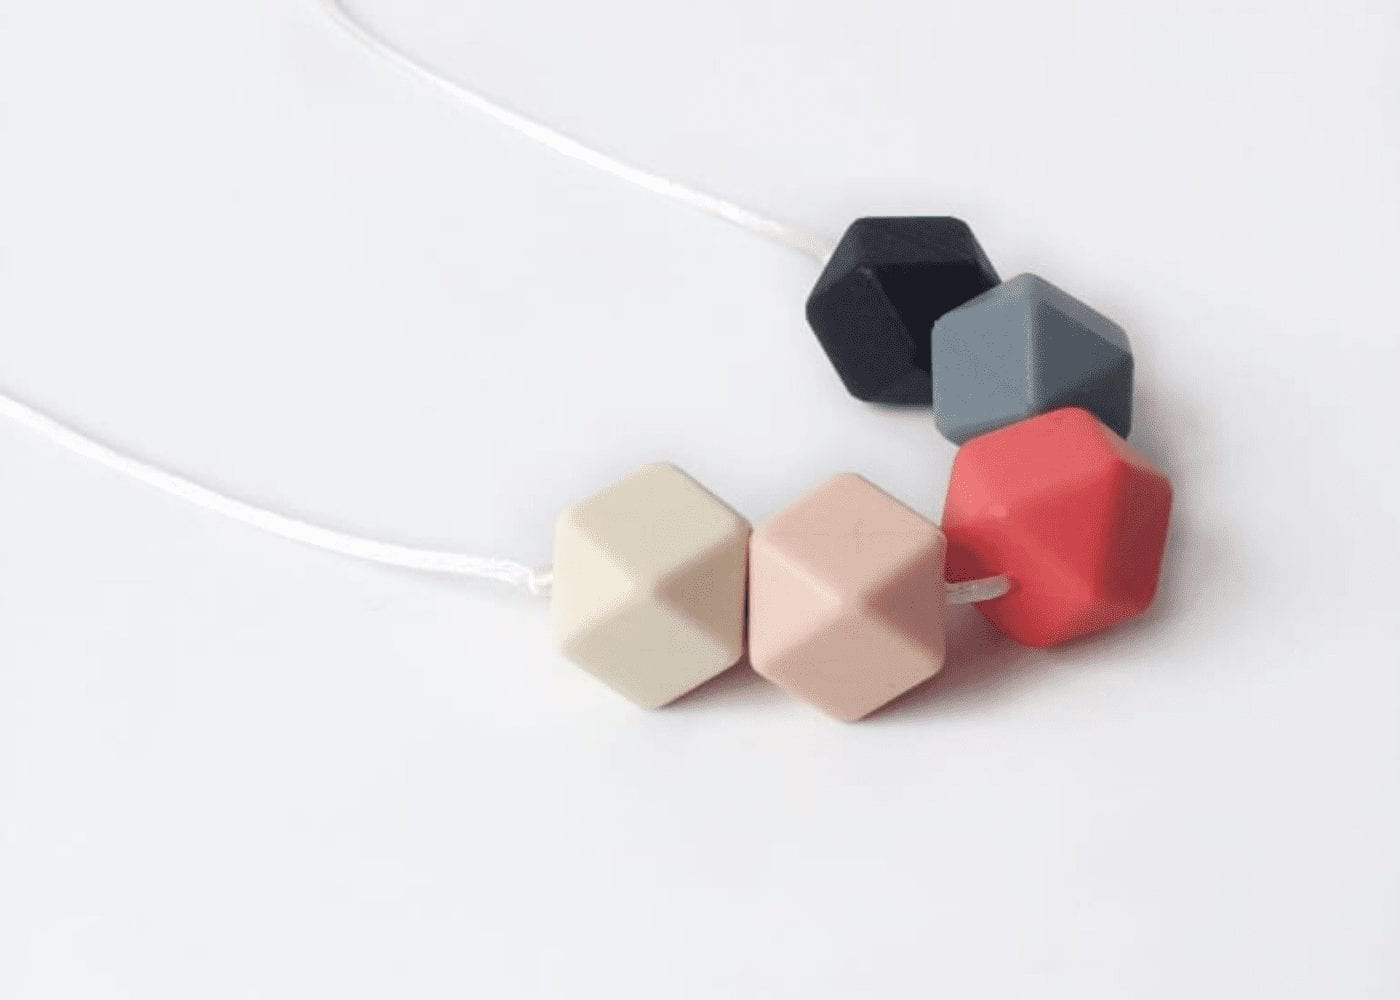 hexagonal necklace on table